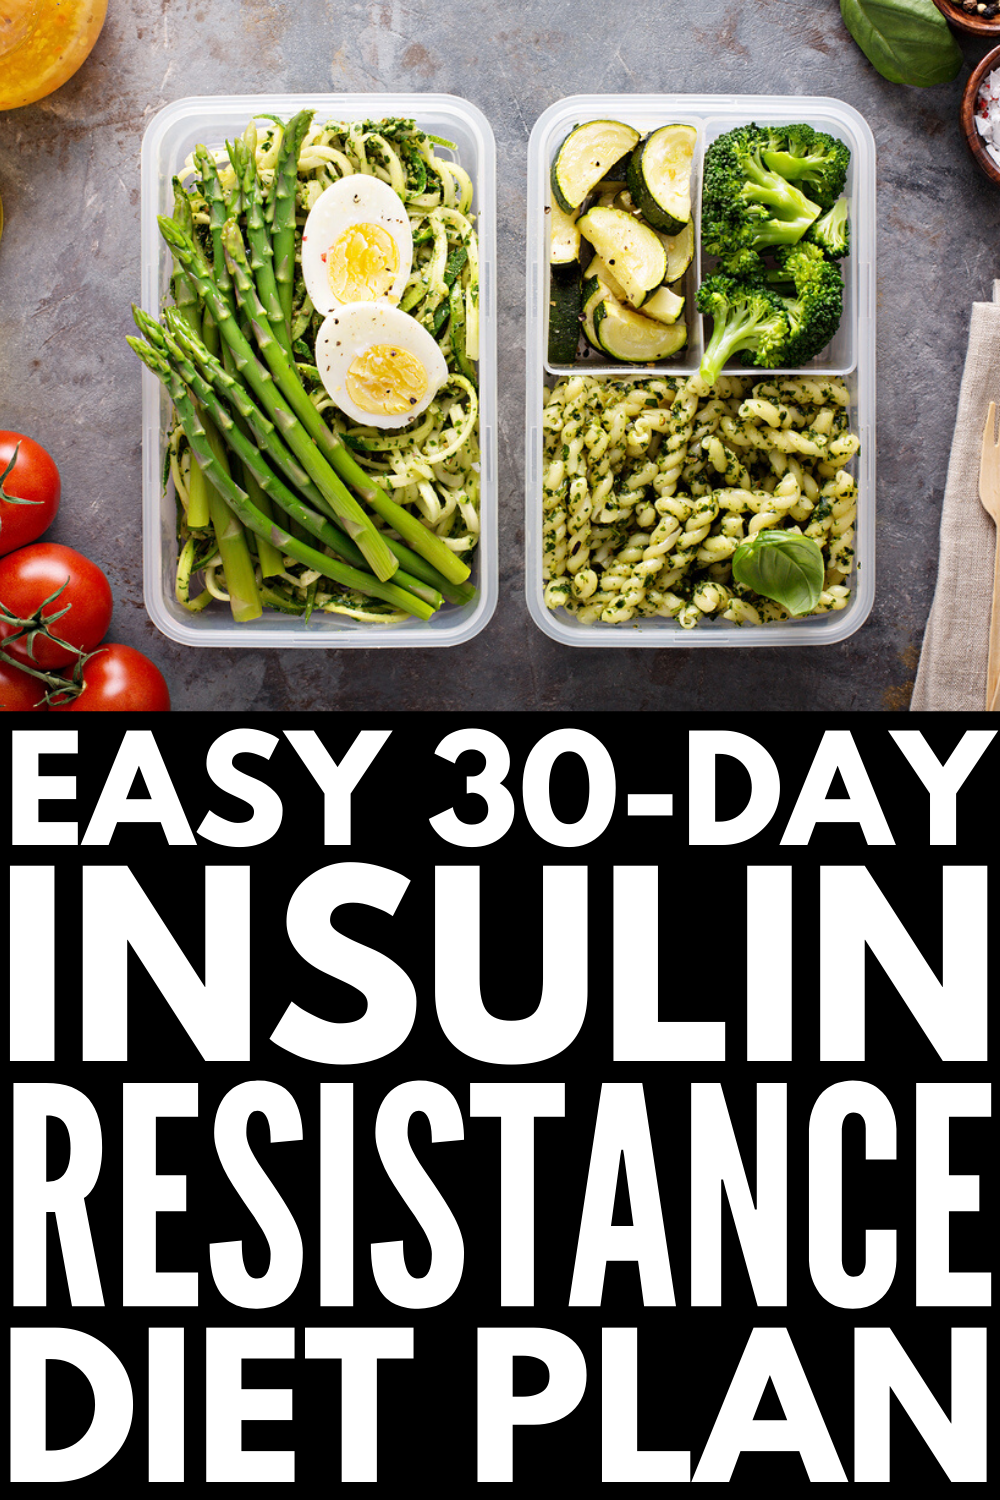 Weight Loss That Works: 30-Day Insulin Resistance